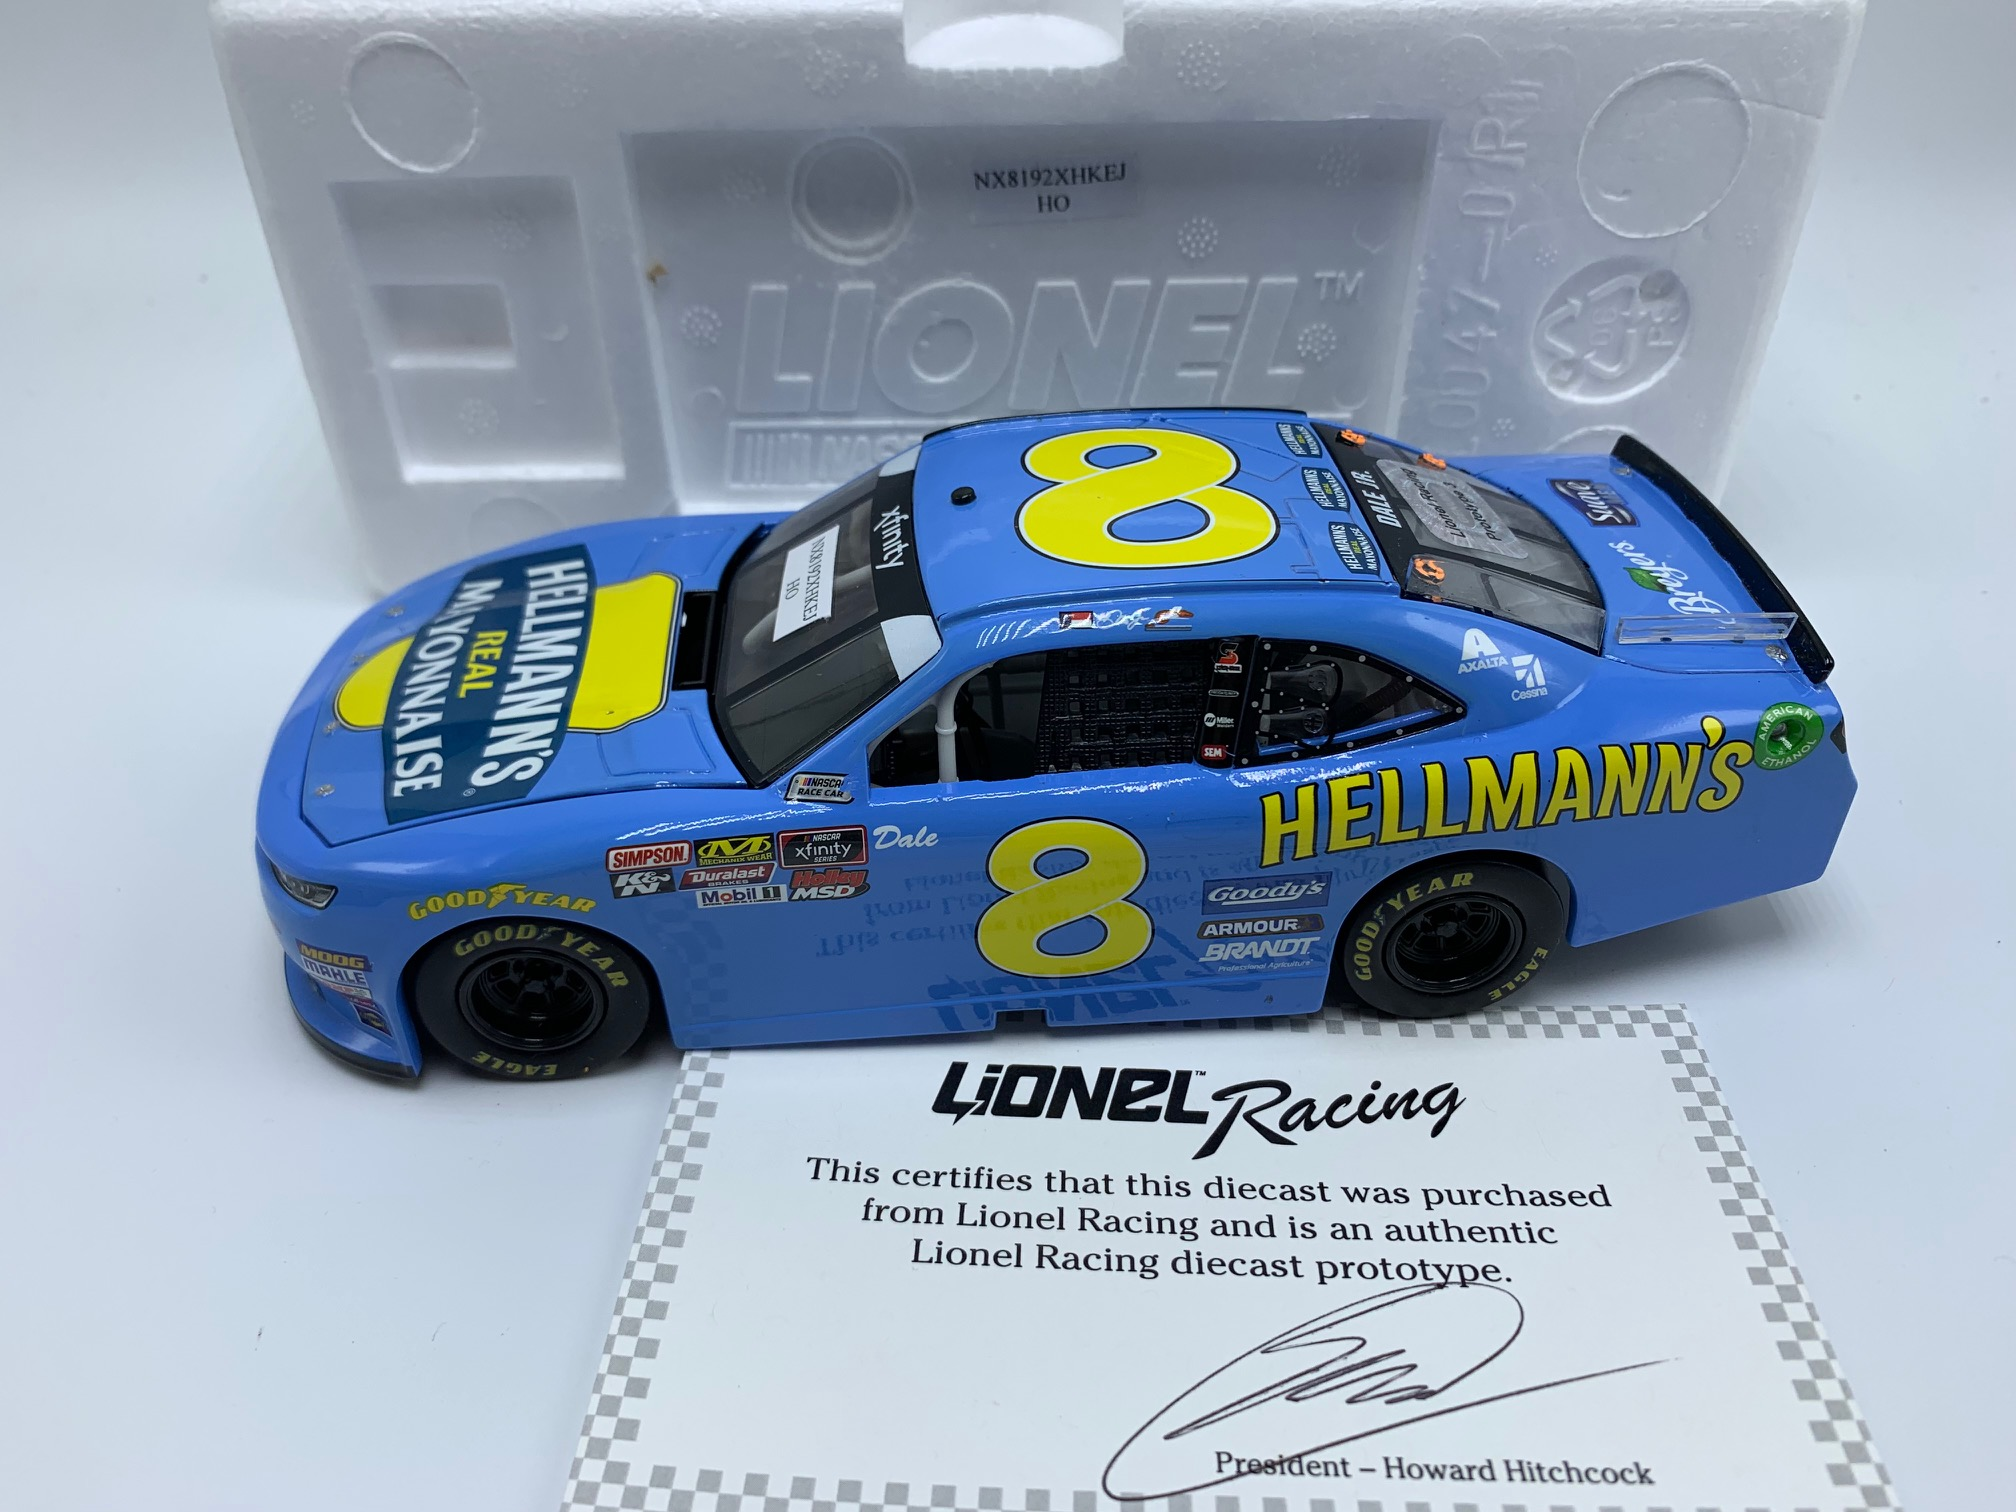 DALE EARNHARDT JR 2019 HELLMANN'S DARLINGTON THROWBACK 1:24 PROTOTYPE # 3